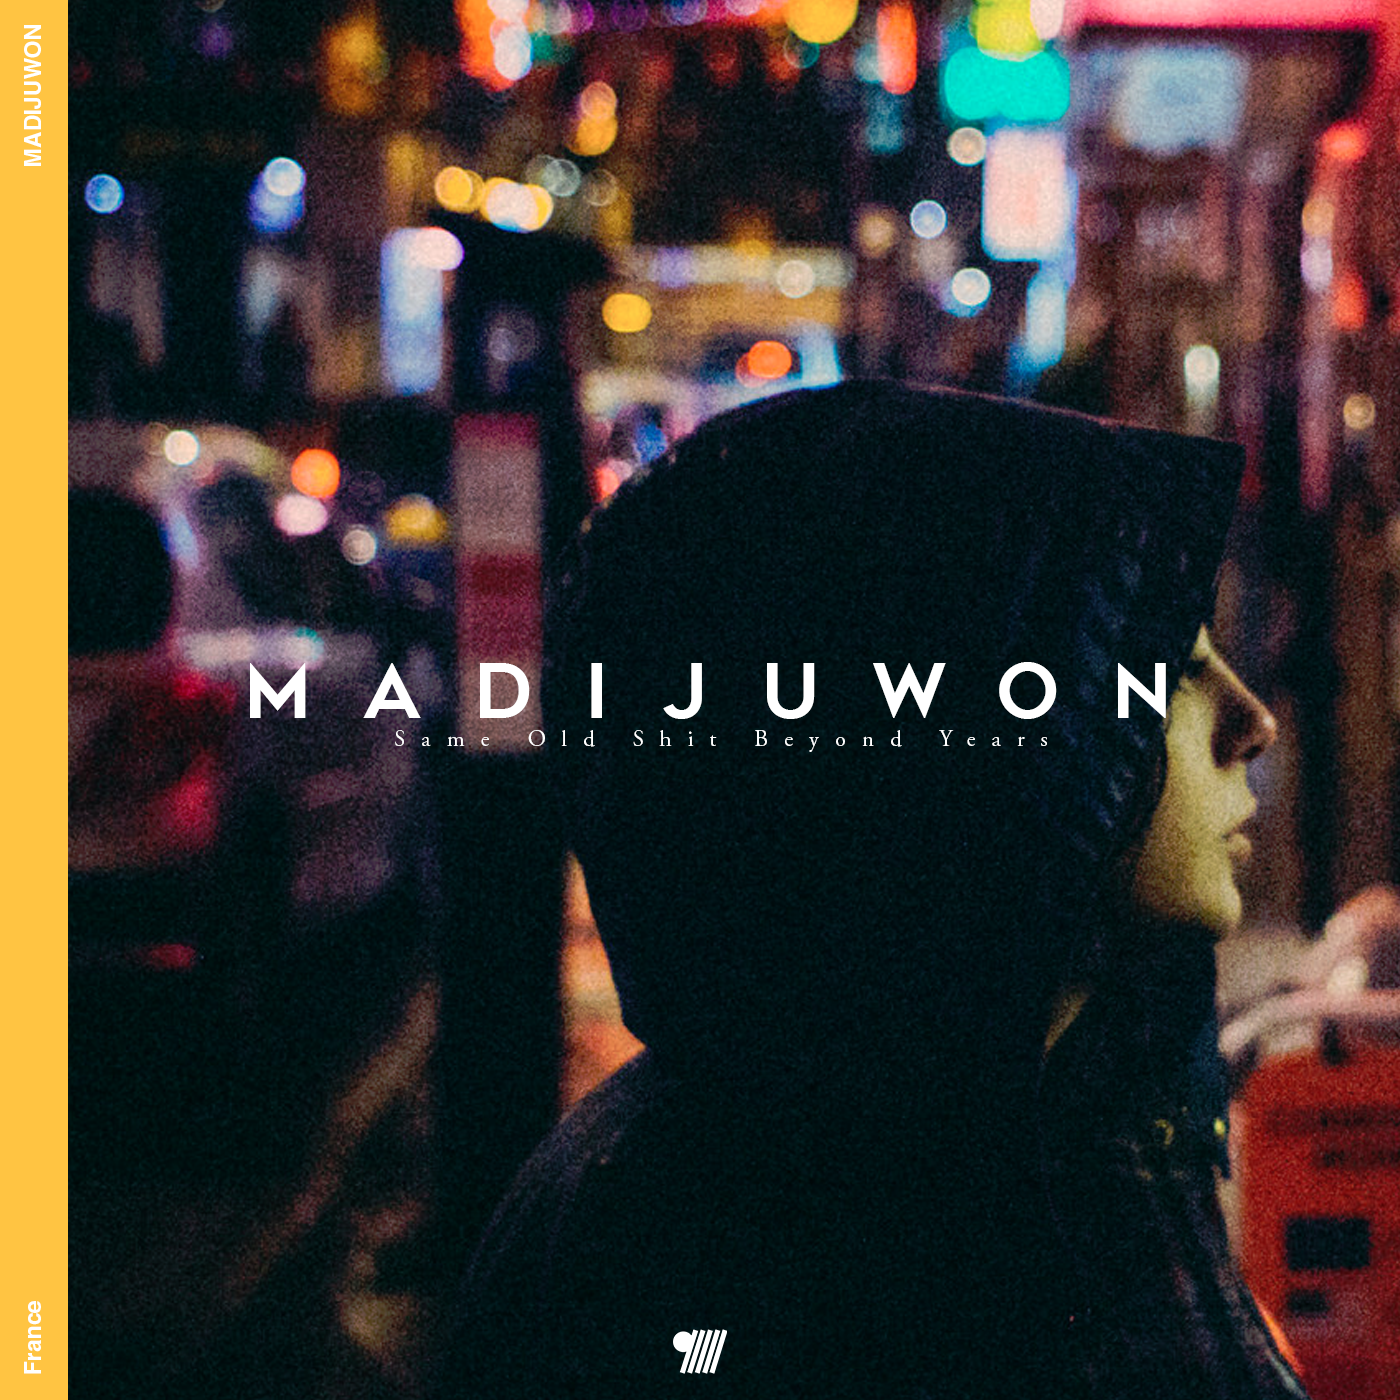 Madijuwon - Same Old Shit Beyond Years